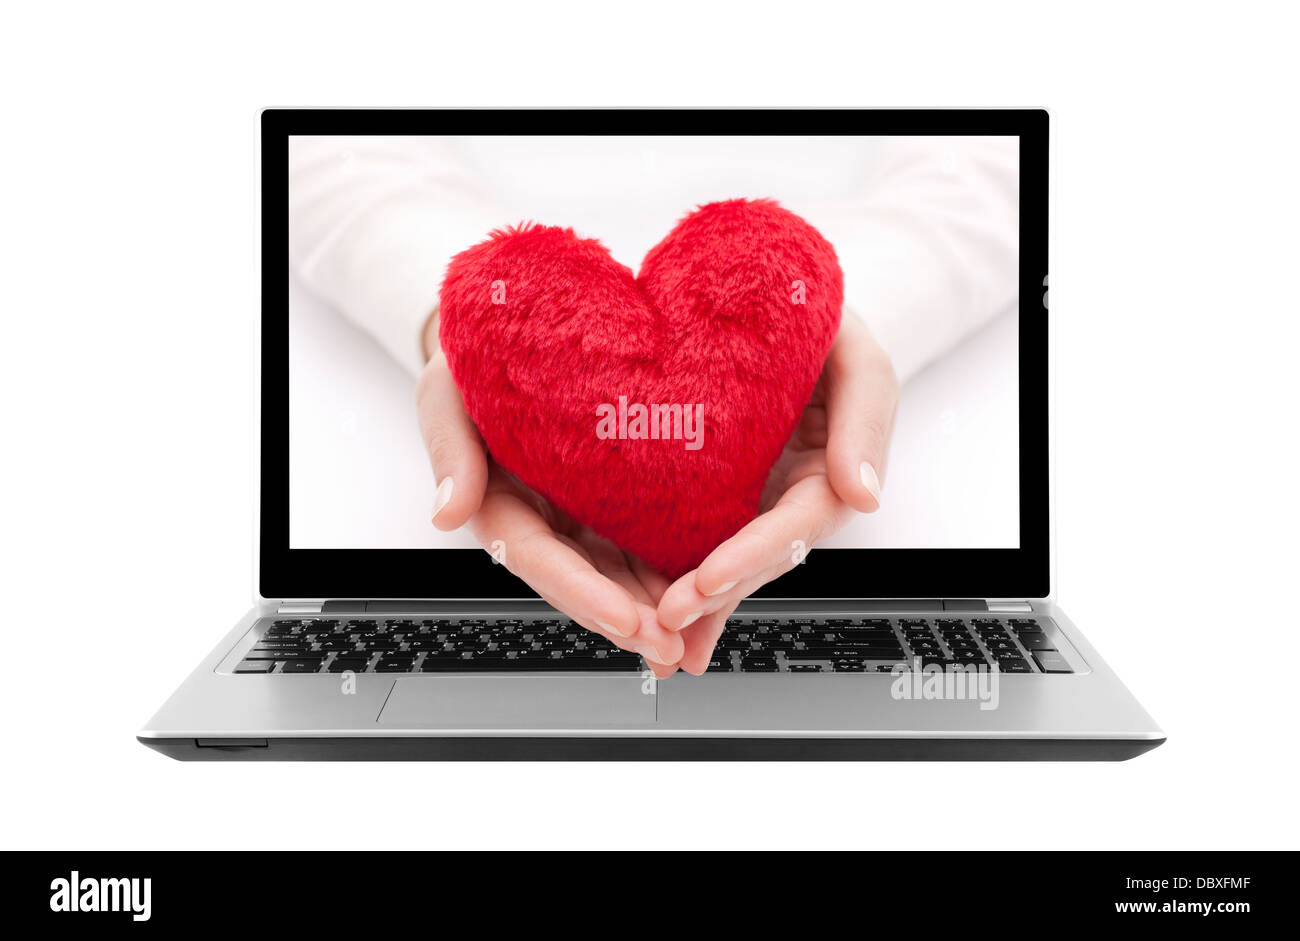 Laptop with red heart in woman hands. Clipping path included. - Stock Image